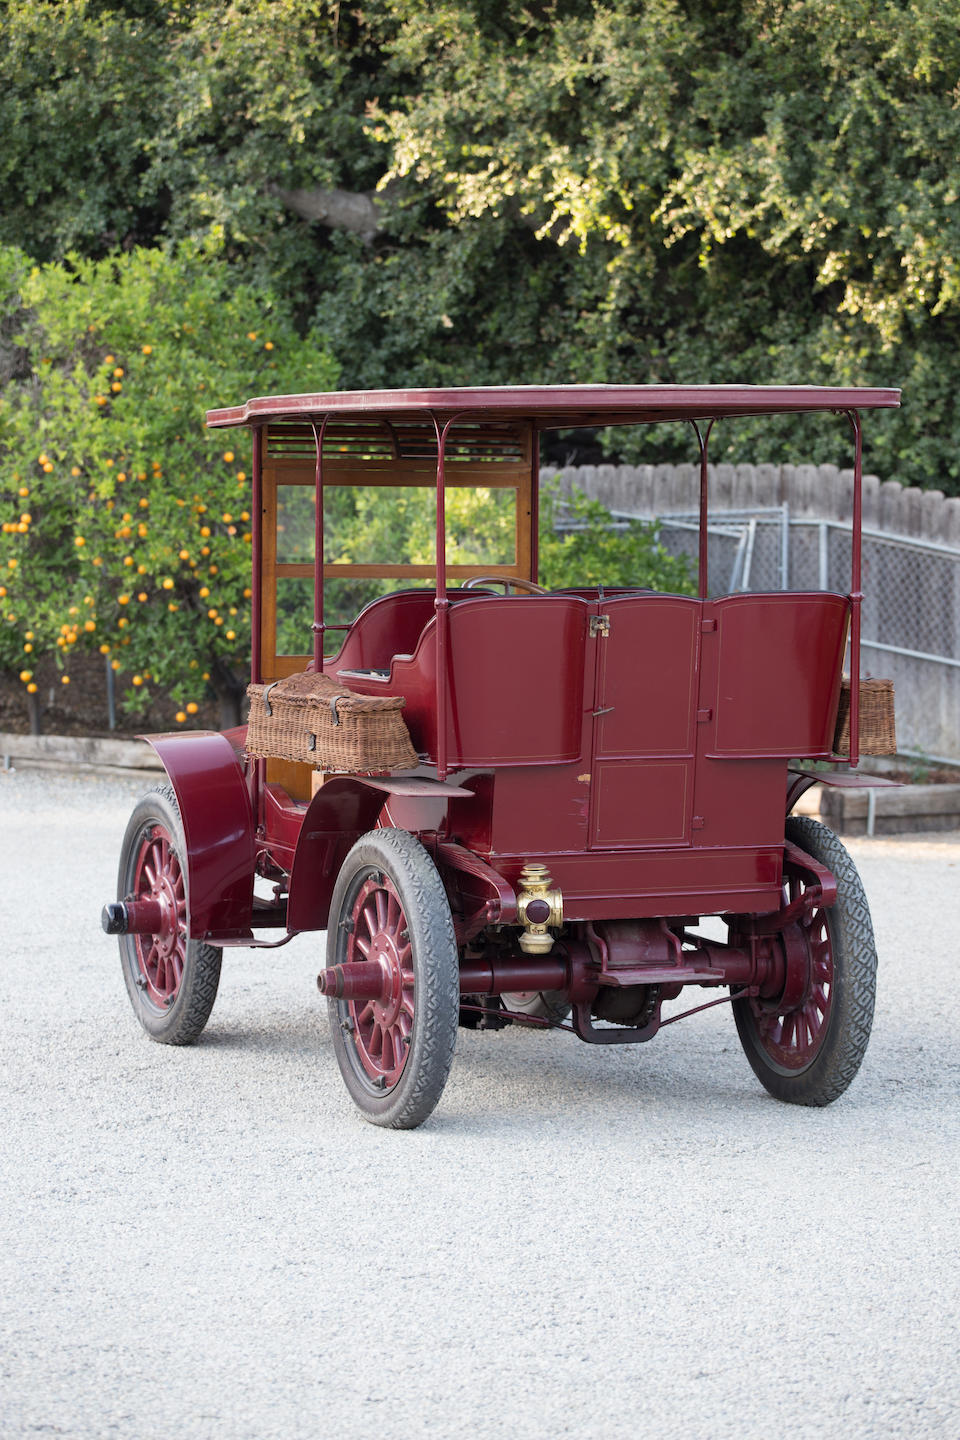 <b>1902 Packard Model G Four-Passenger Surrey</b>